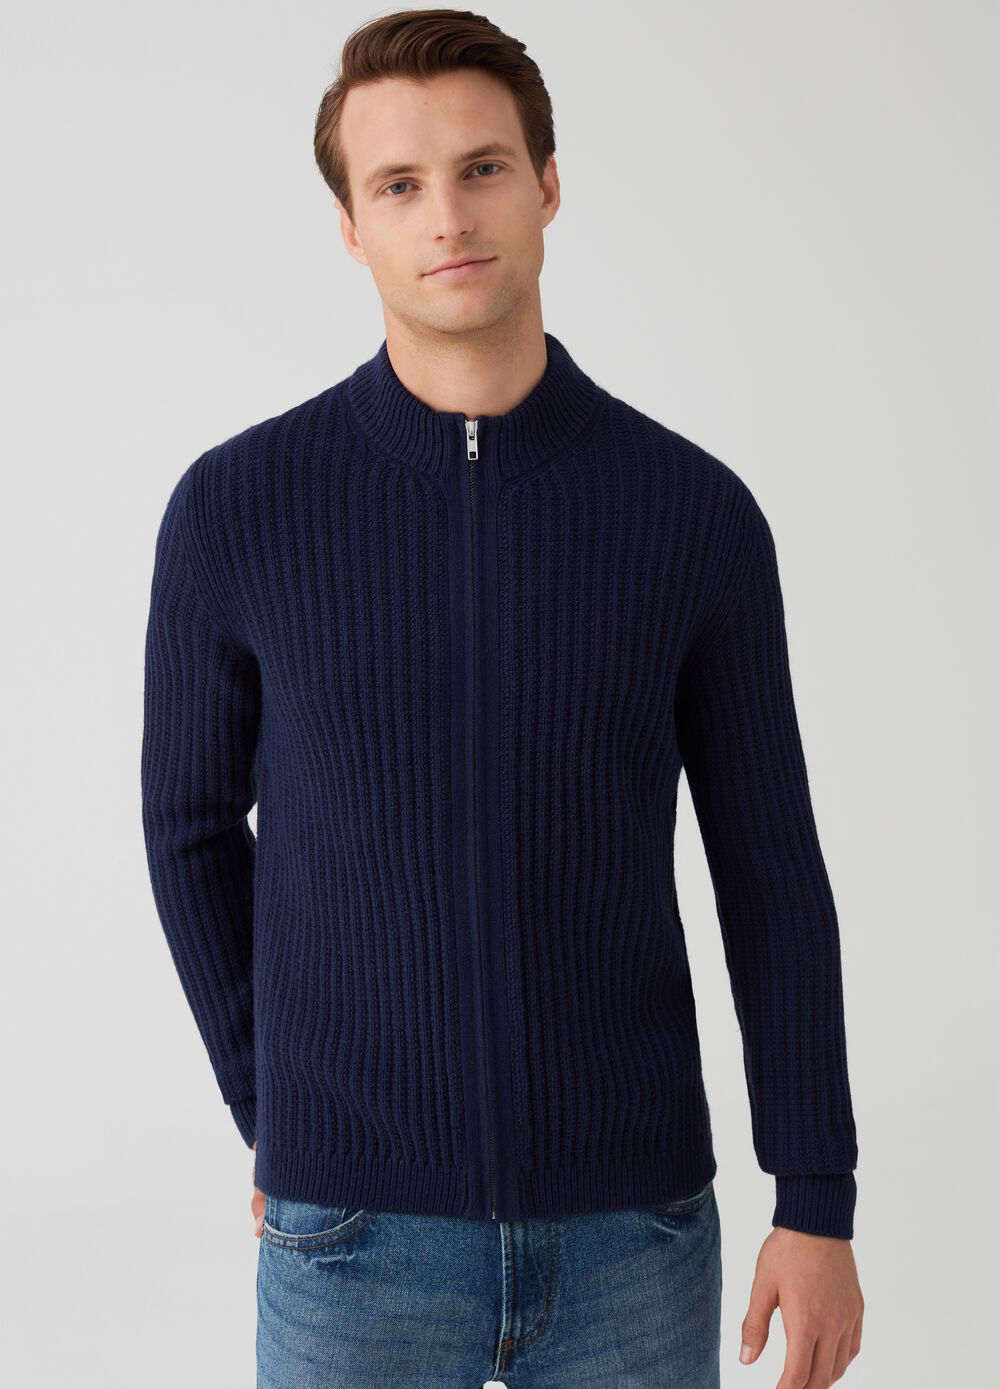 Knitted cardigan with high neck and zip